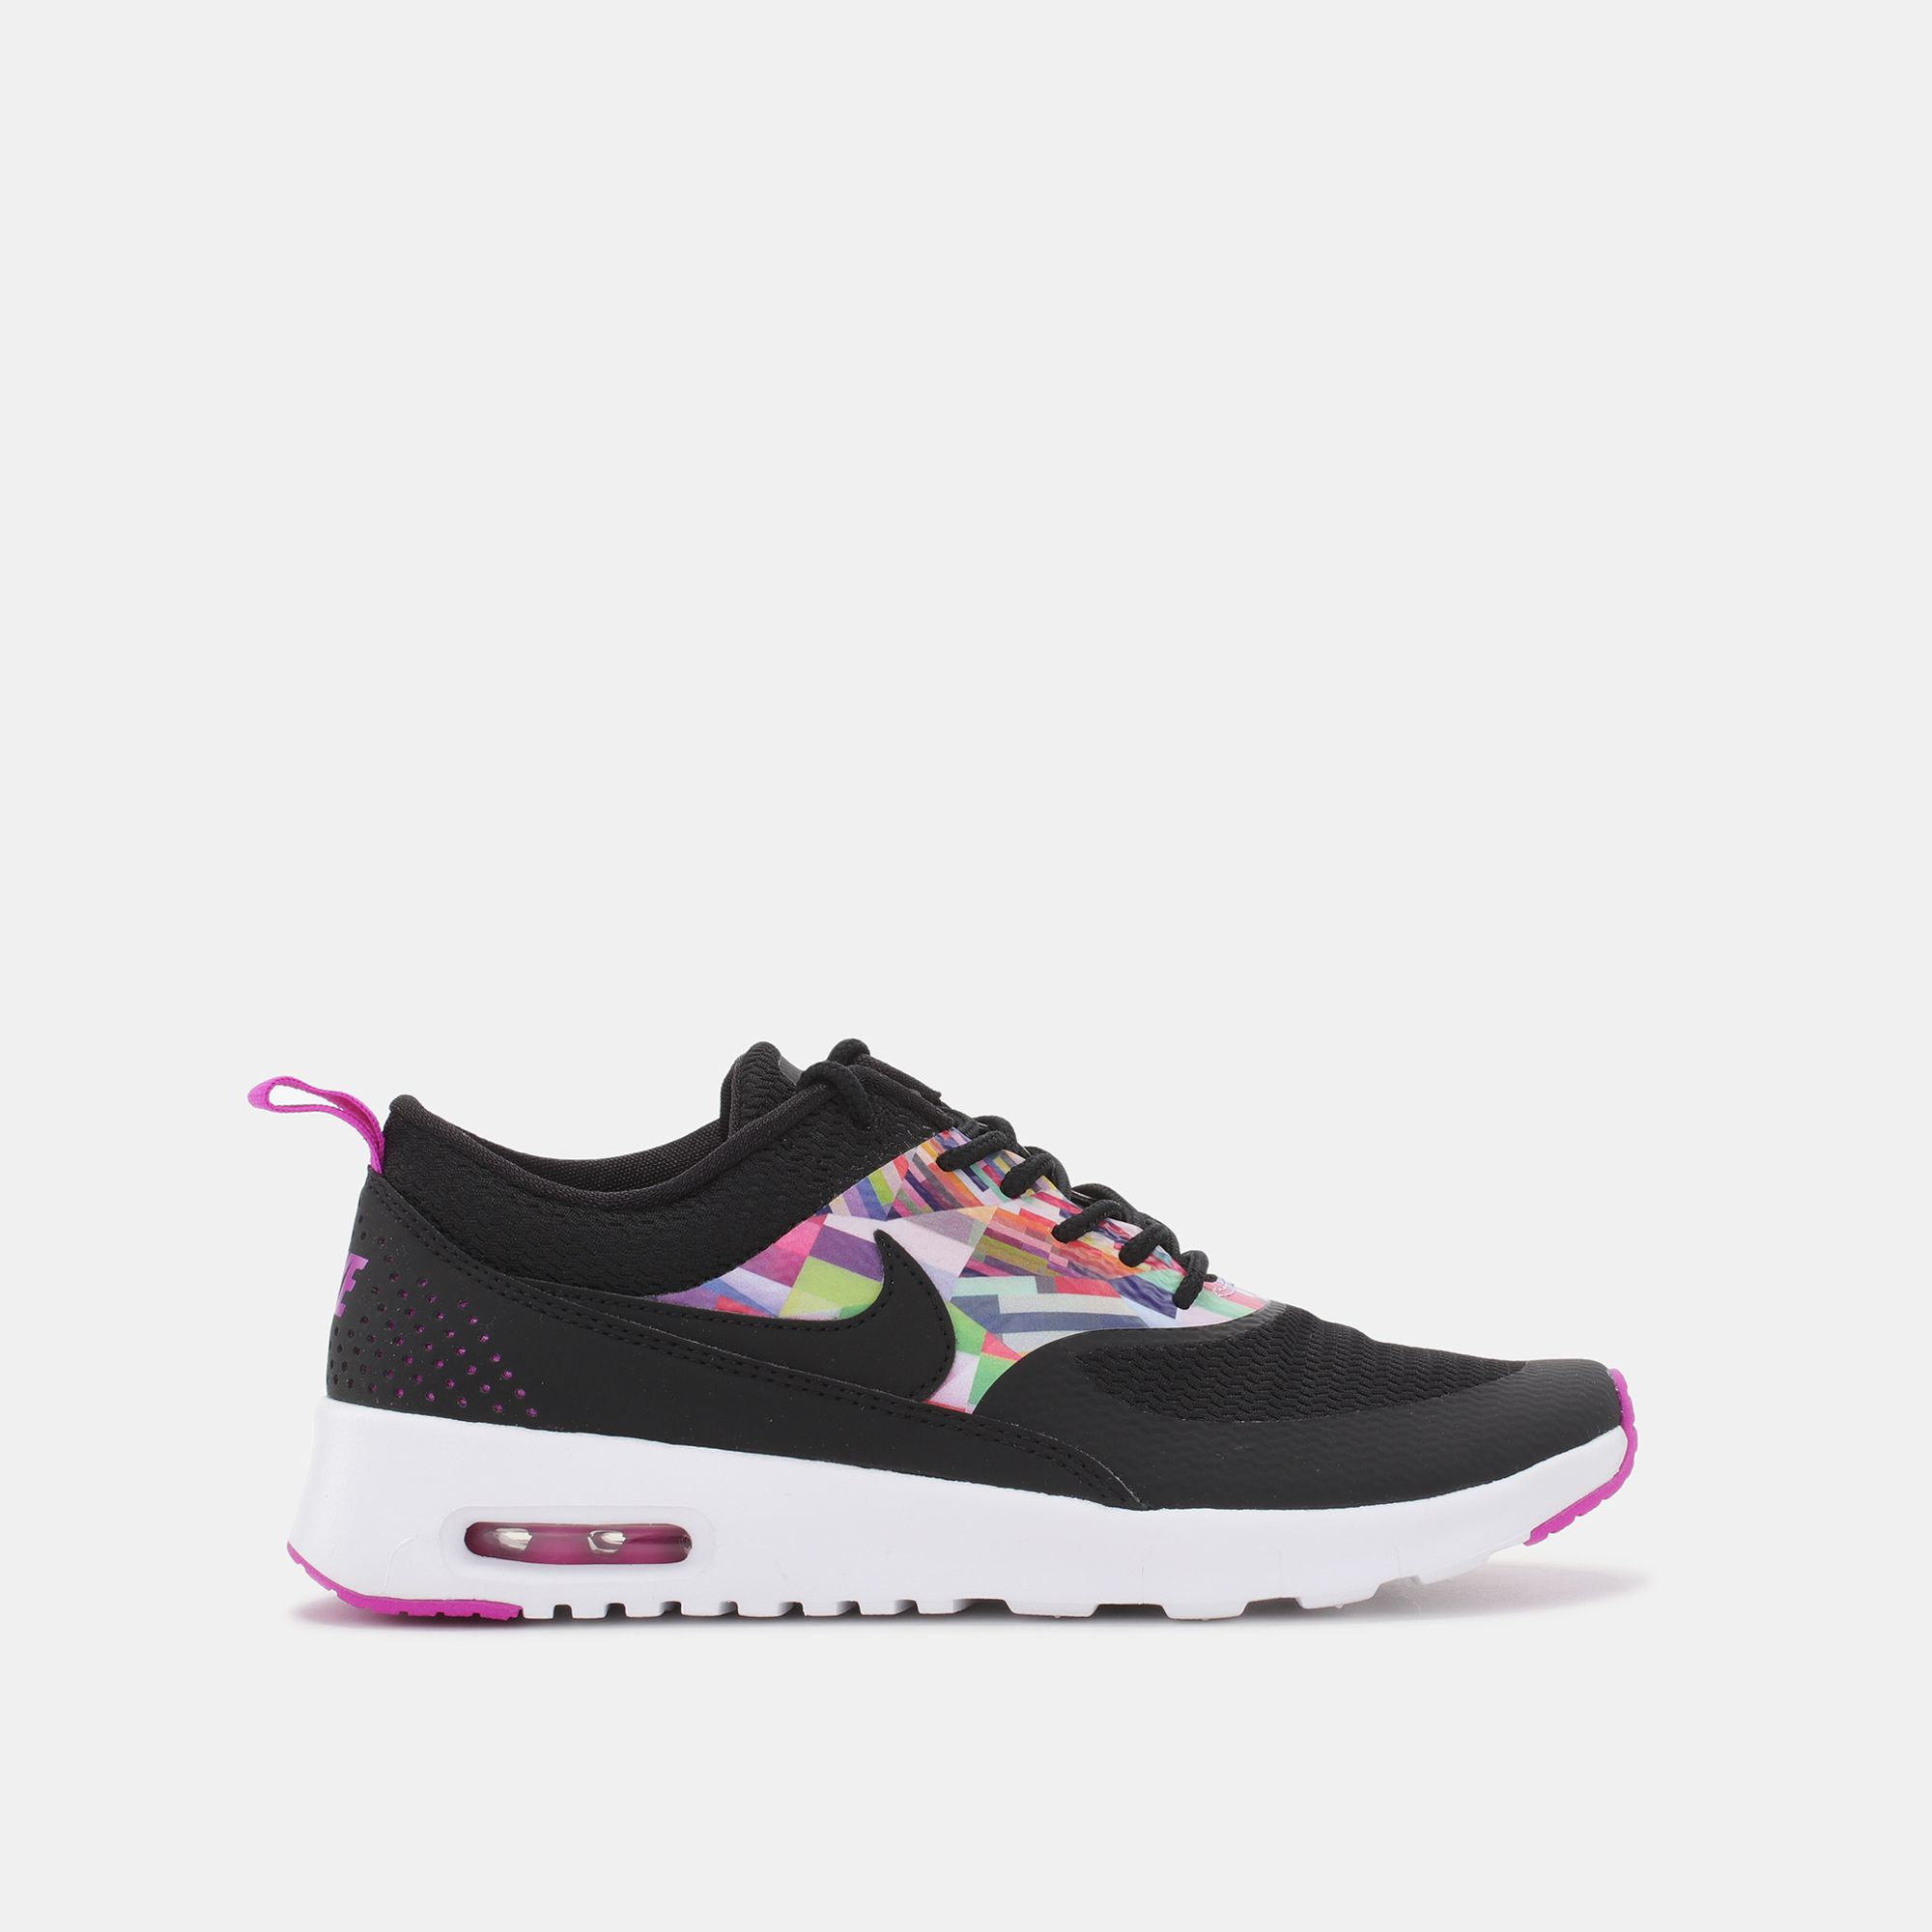 30d772eab4f2 ... official store nike kids air max thea joli grade school shoe c417c e0feb